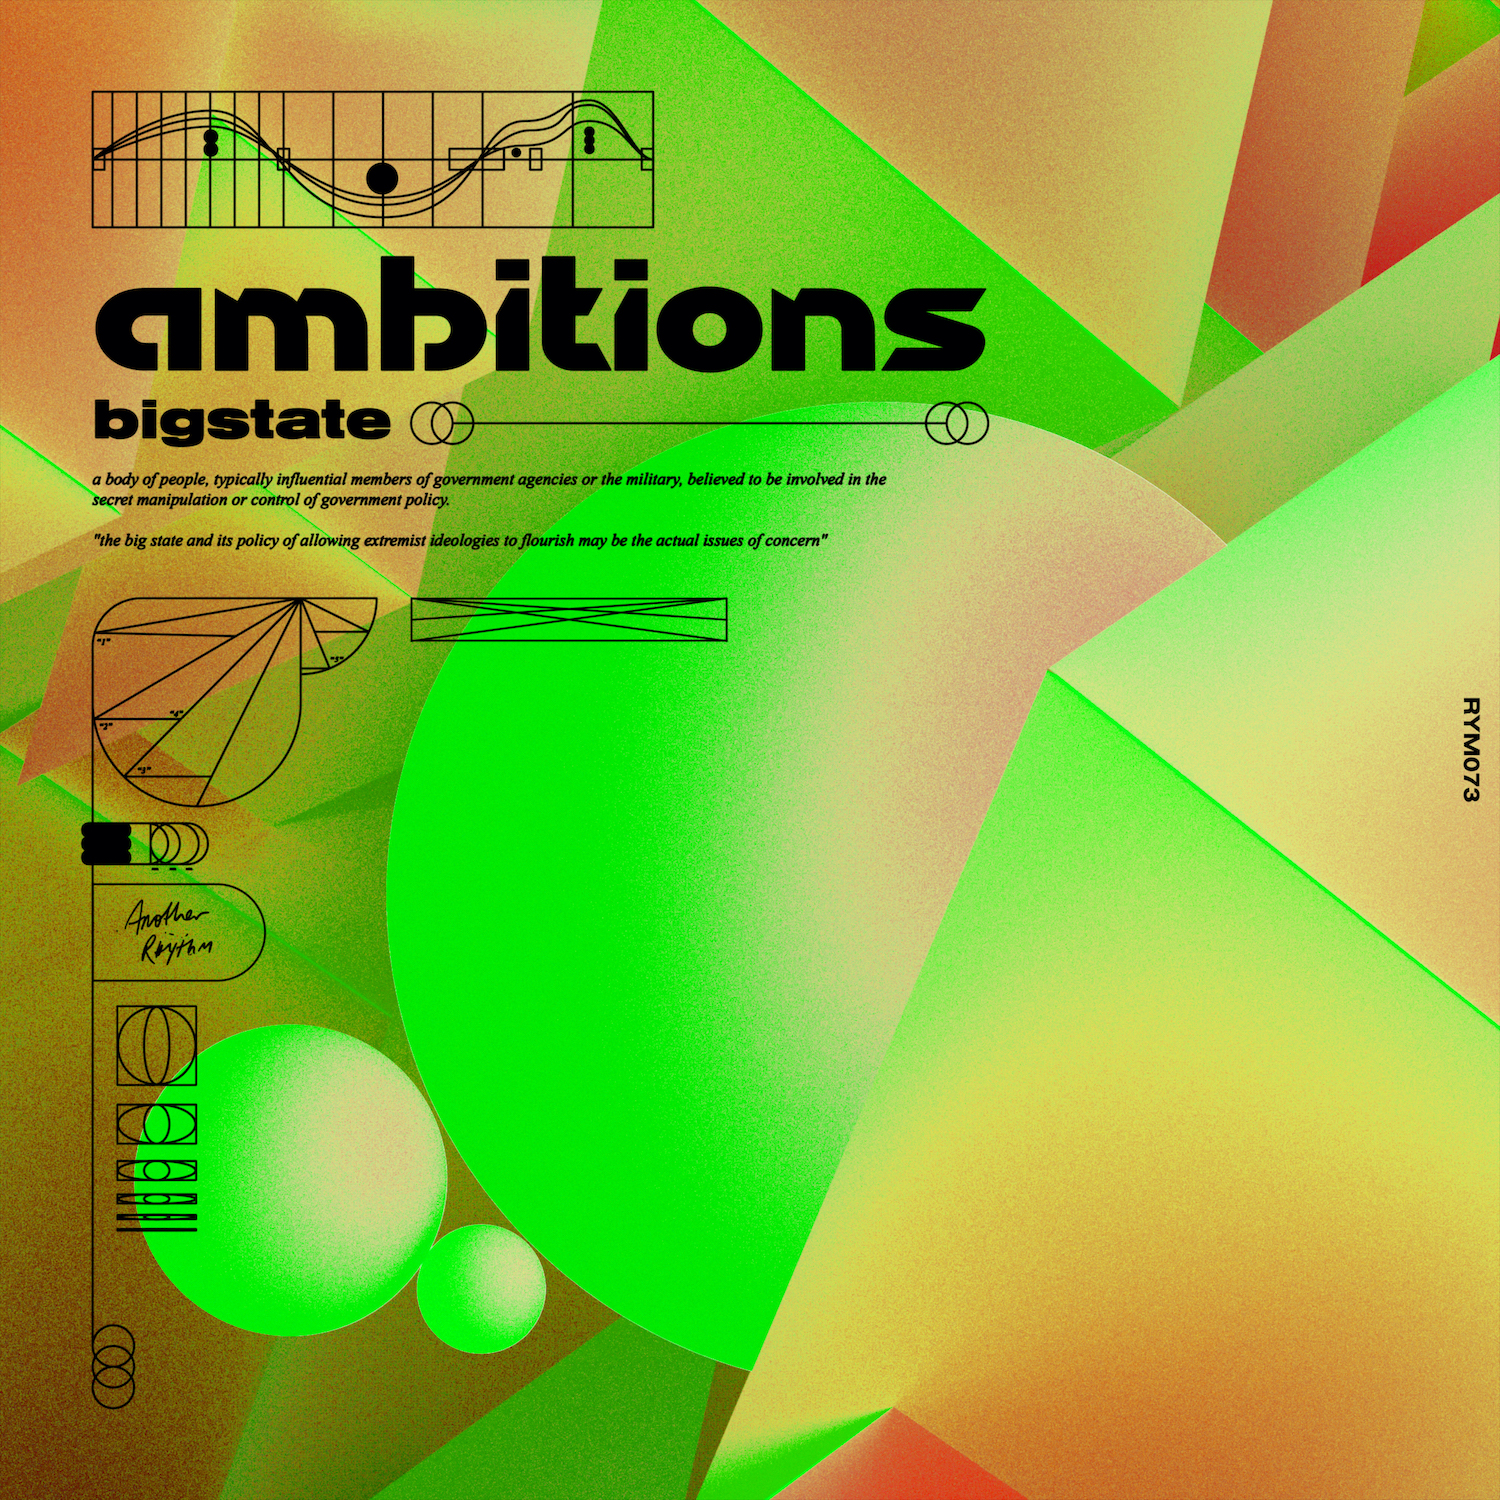 Ambitions Image